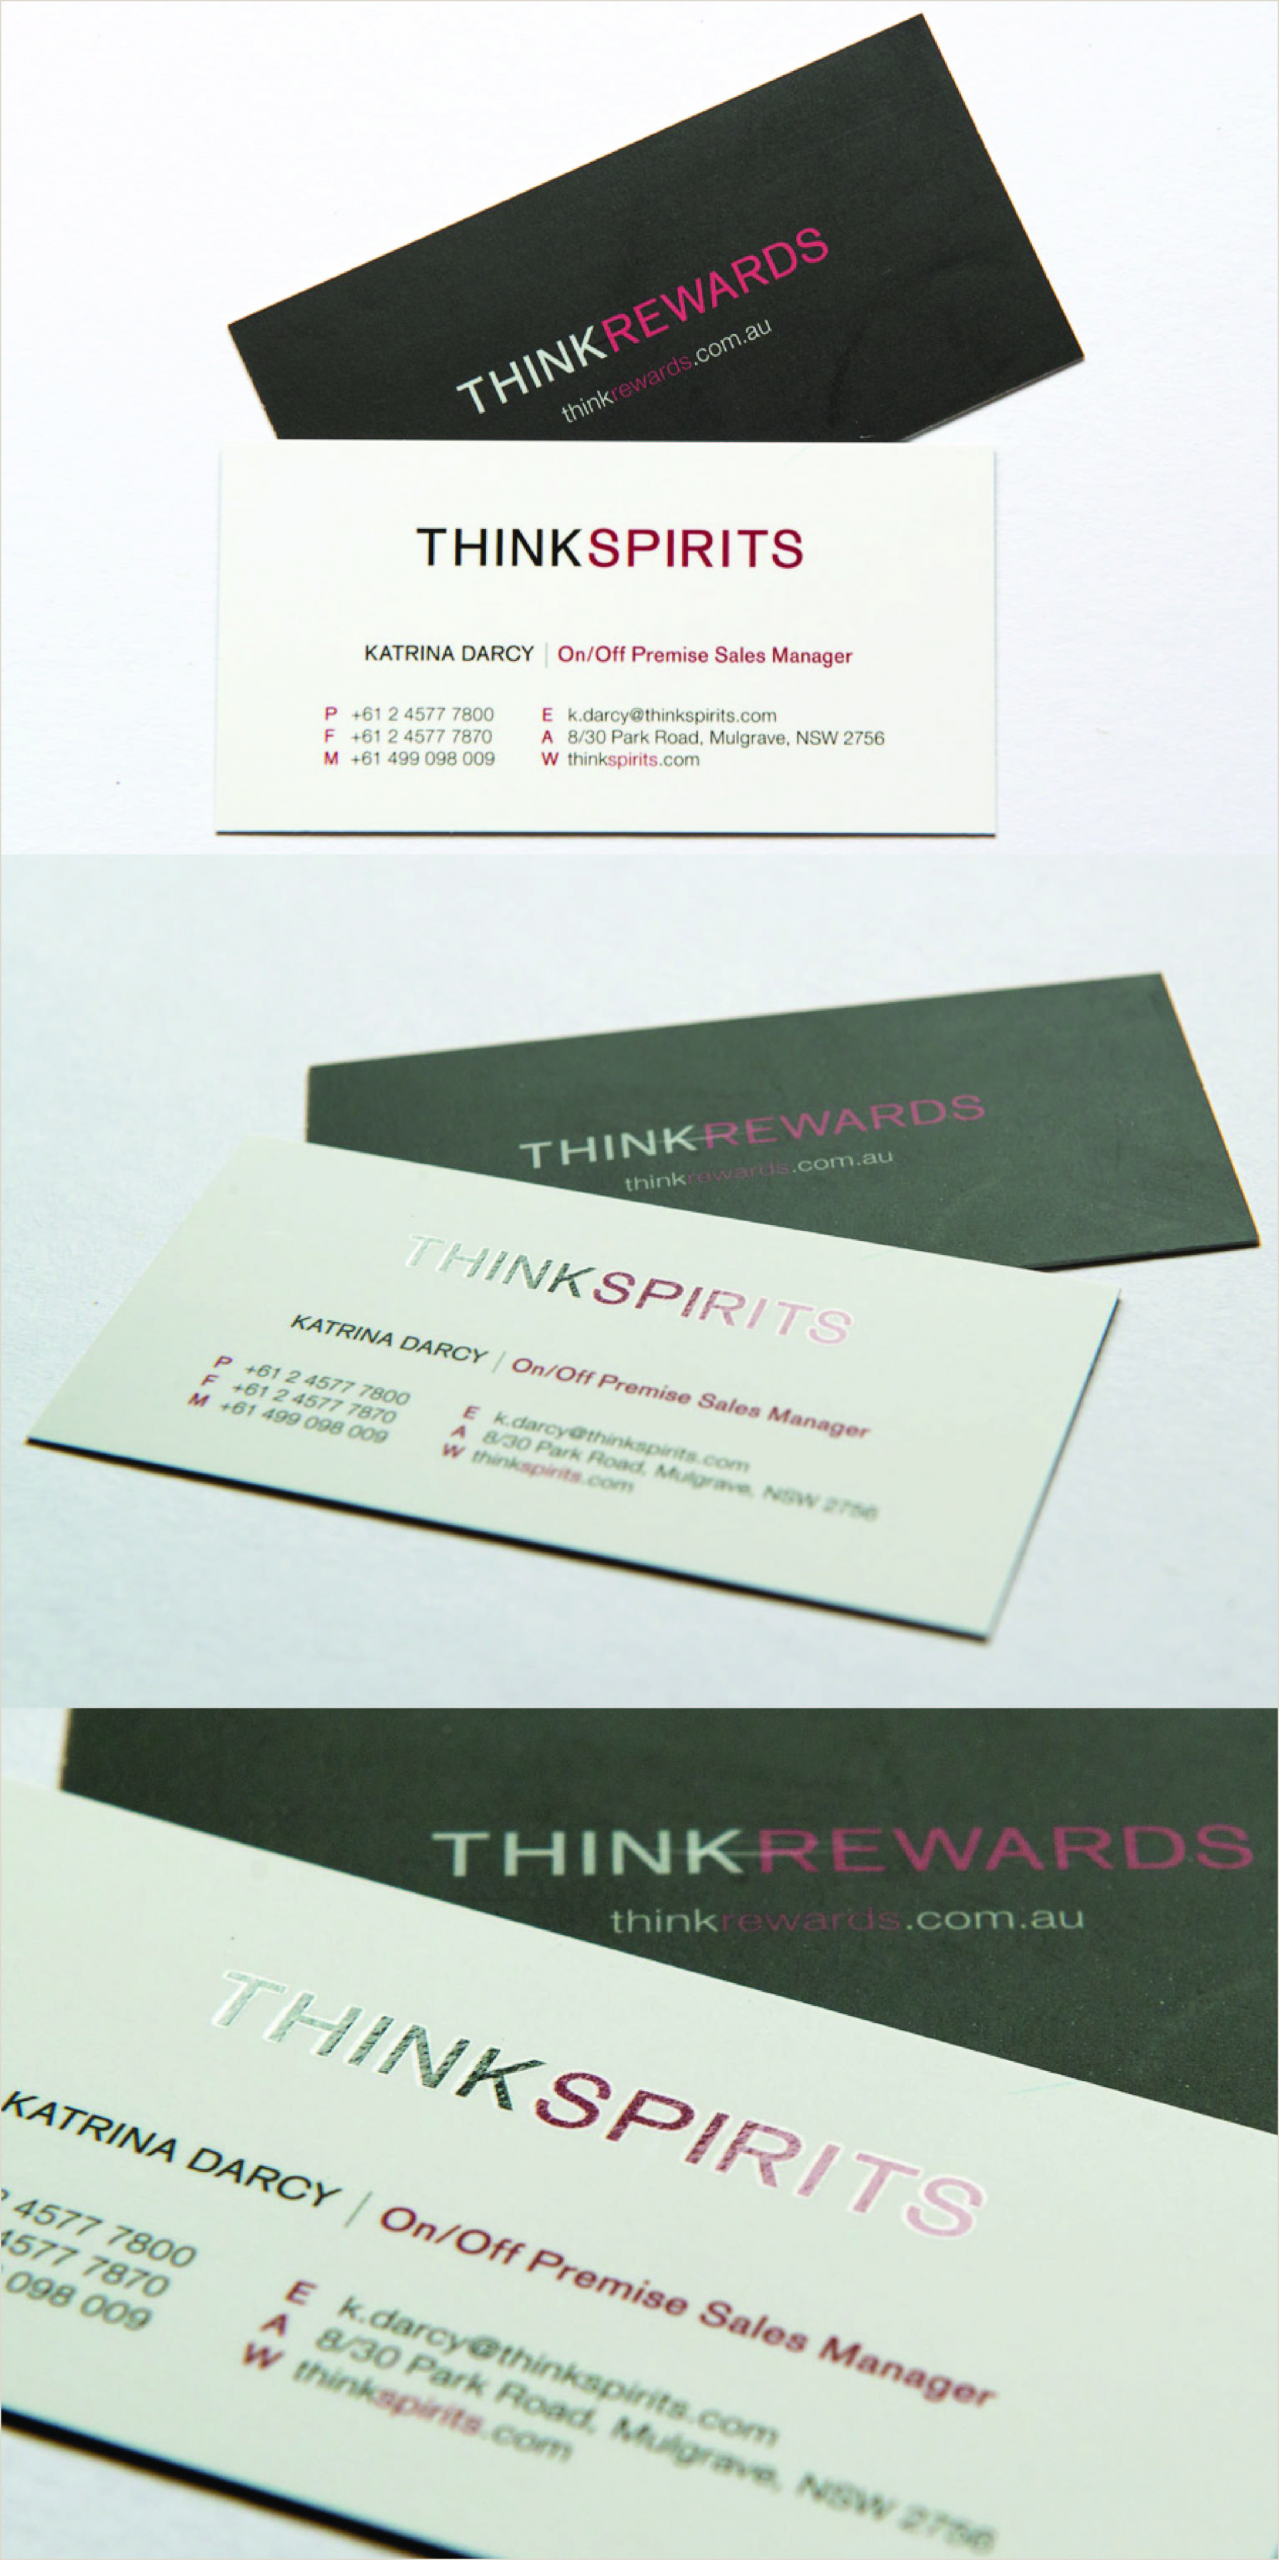 Business Cards Cost The Economy Business Cards Are The Standard Choice Out Of